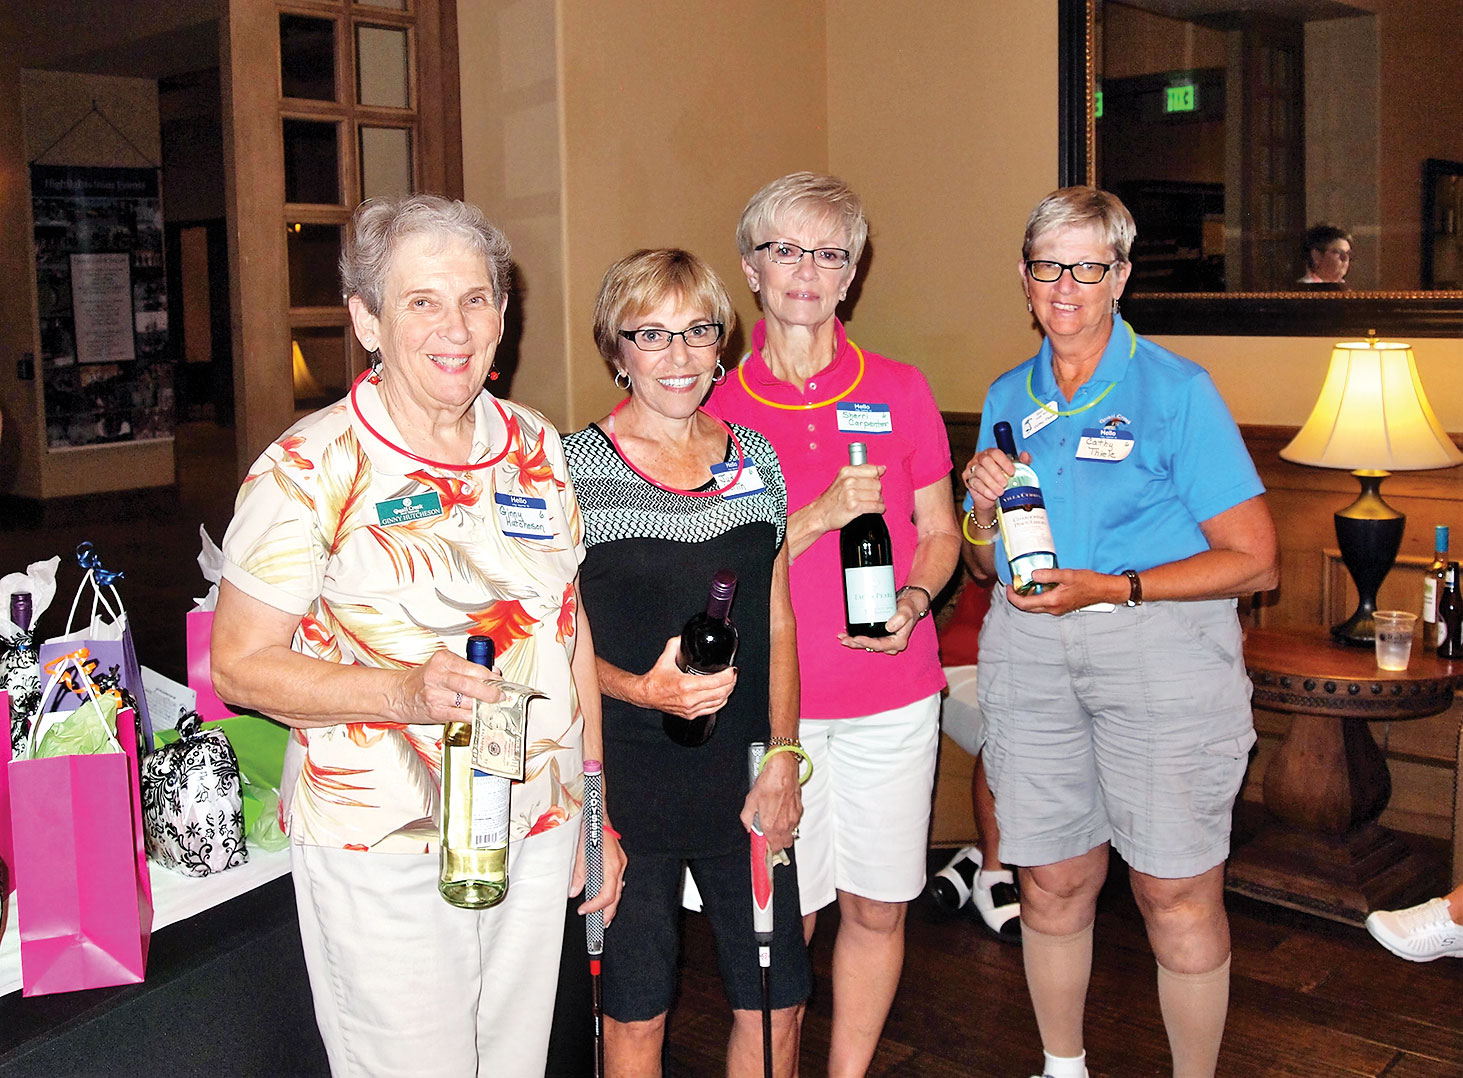 Left to right: First place team winners Ginny Hutchison, Judy Kerlin, Sherri Carpenter and Cathy Thiele were delighted with their prizes; photo by Sylvia Butler.